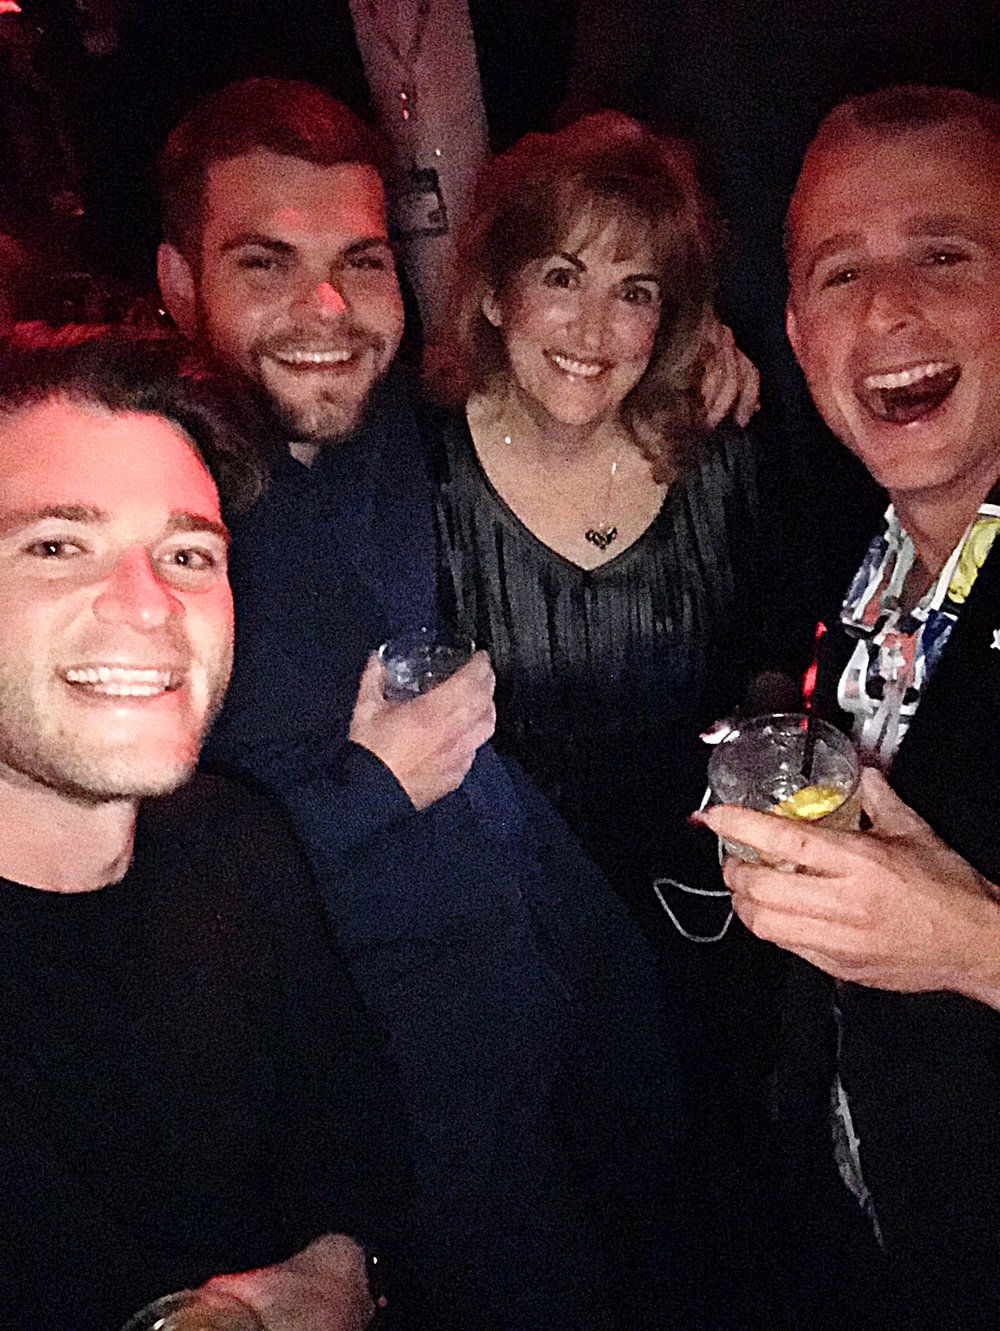 The Emoji Empires team selfie with our good friend  Barbara Neu  at the Hakkasan party hosted by  MMX .